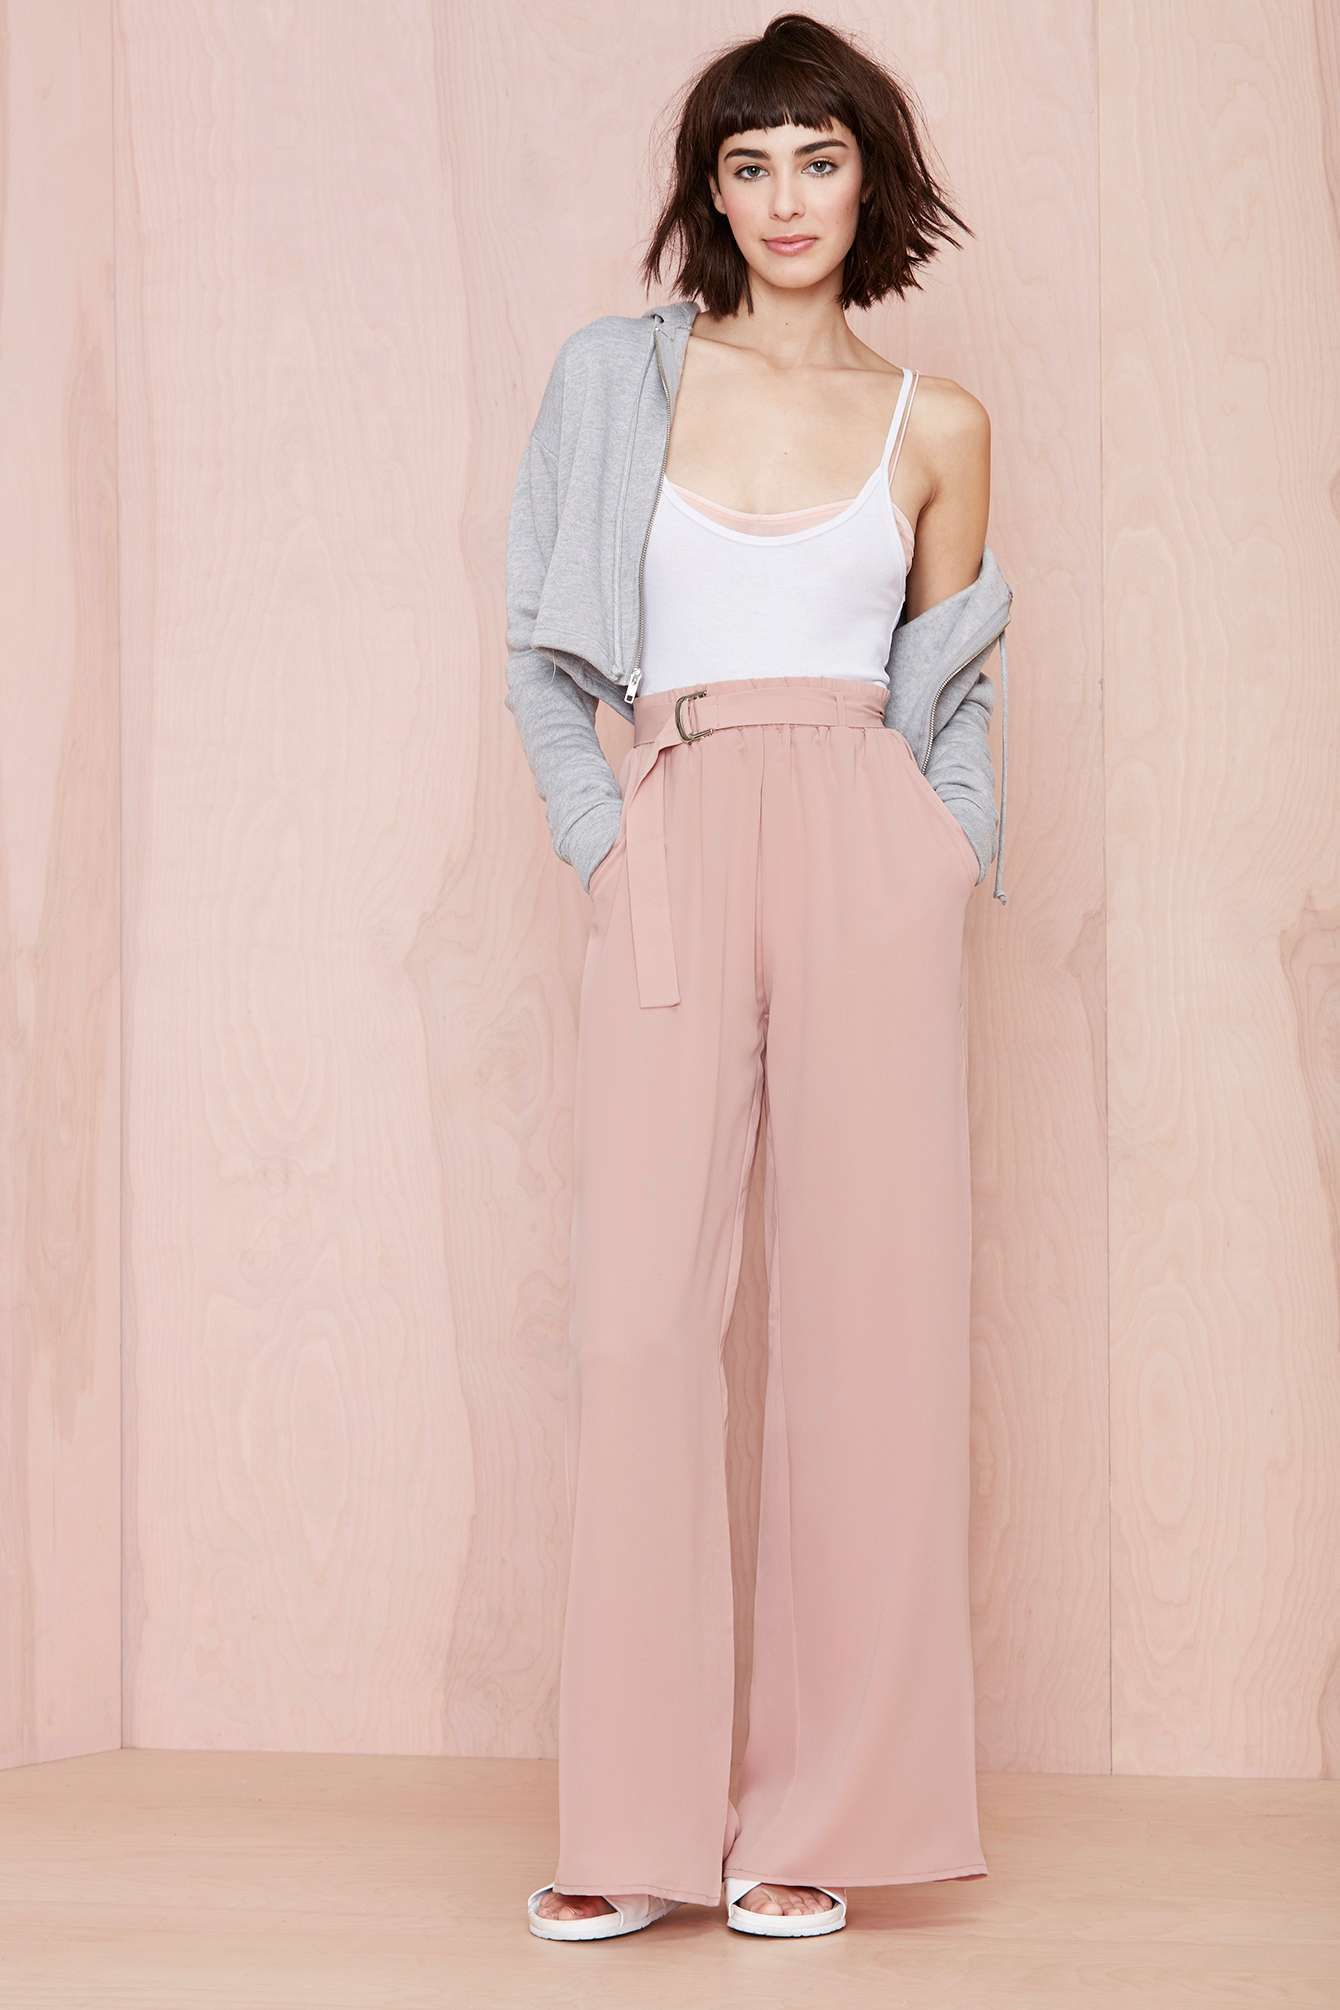 Wide legged pants, shopping in Ahmedabad, Fresher's fashion, fashion and lifestyle, fashion trends in Ahmedabad